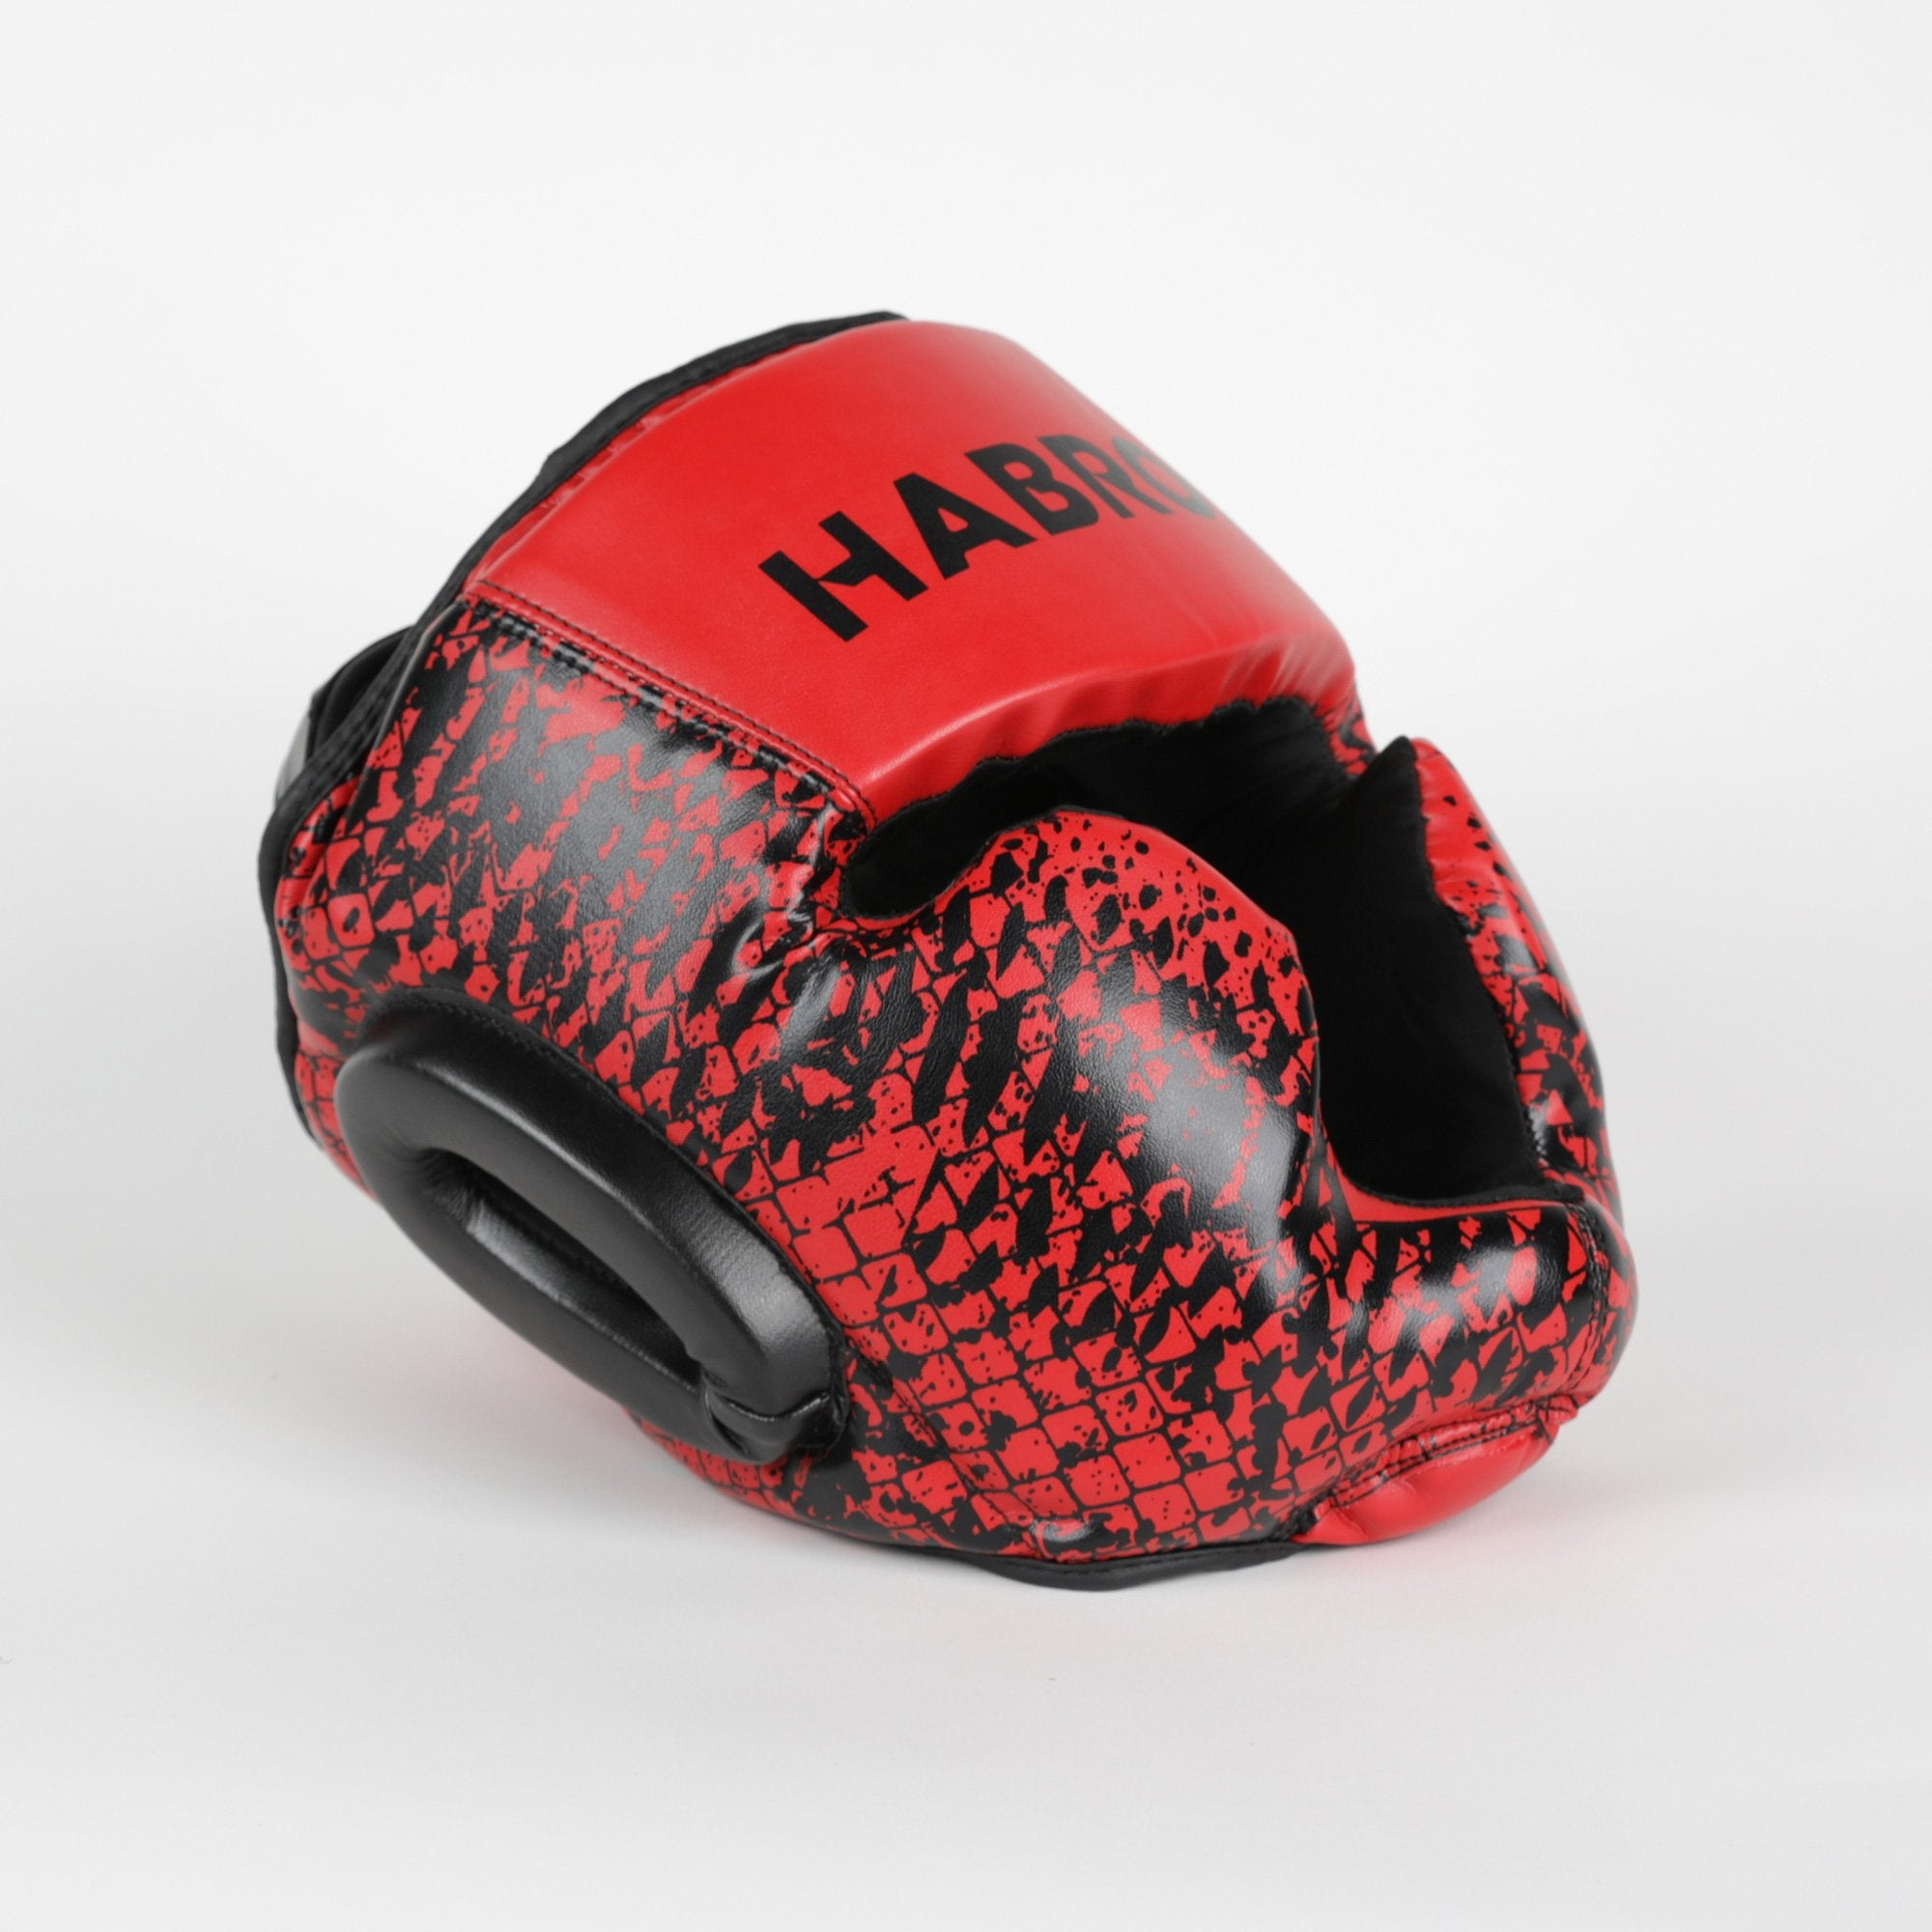 Habrok head guard RED X1 | Kids |  Head Guard | Red | Habrok | MMA | Boxing | Muay Thai